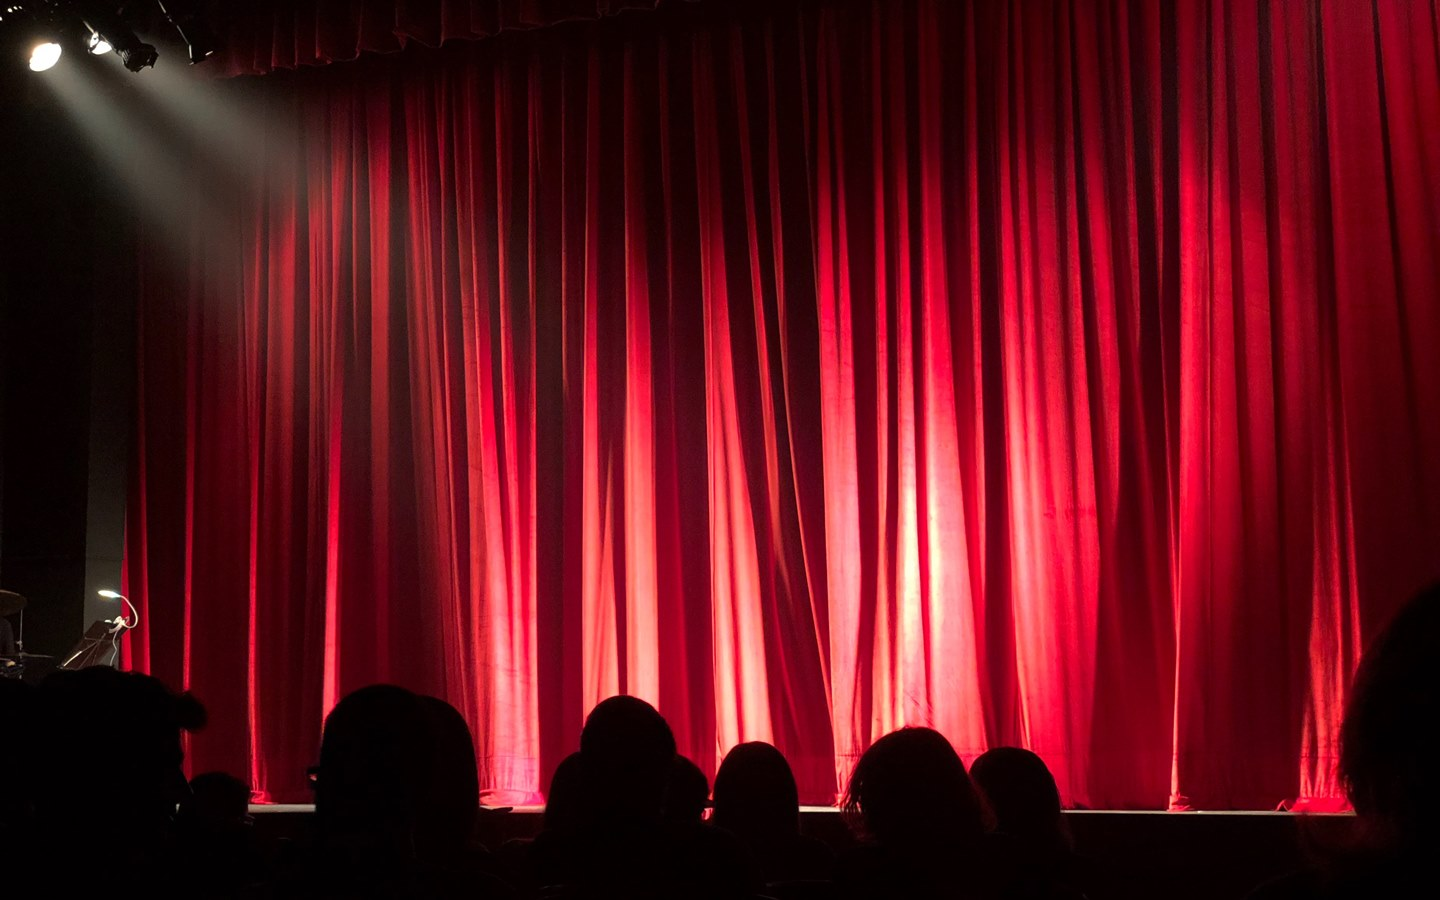 One of the best events in january for comedy shows